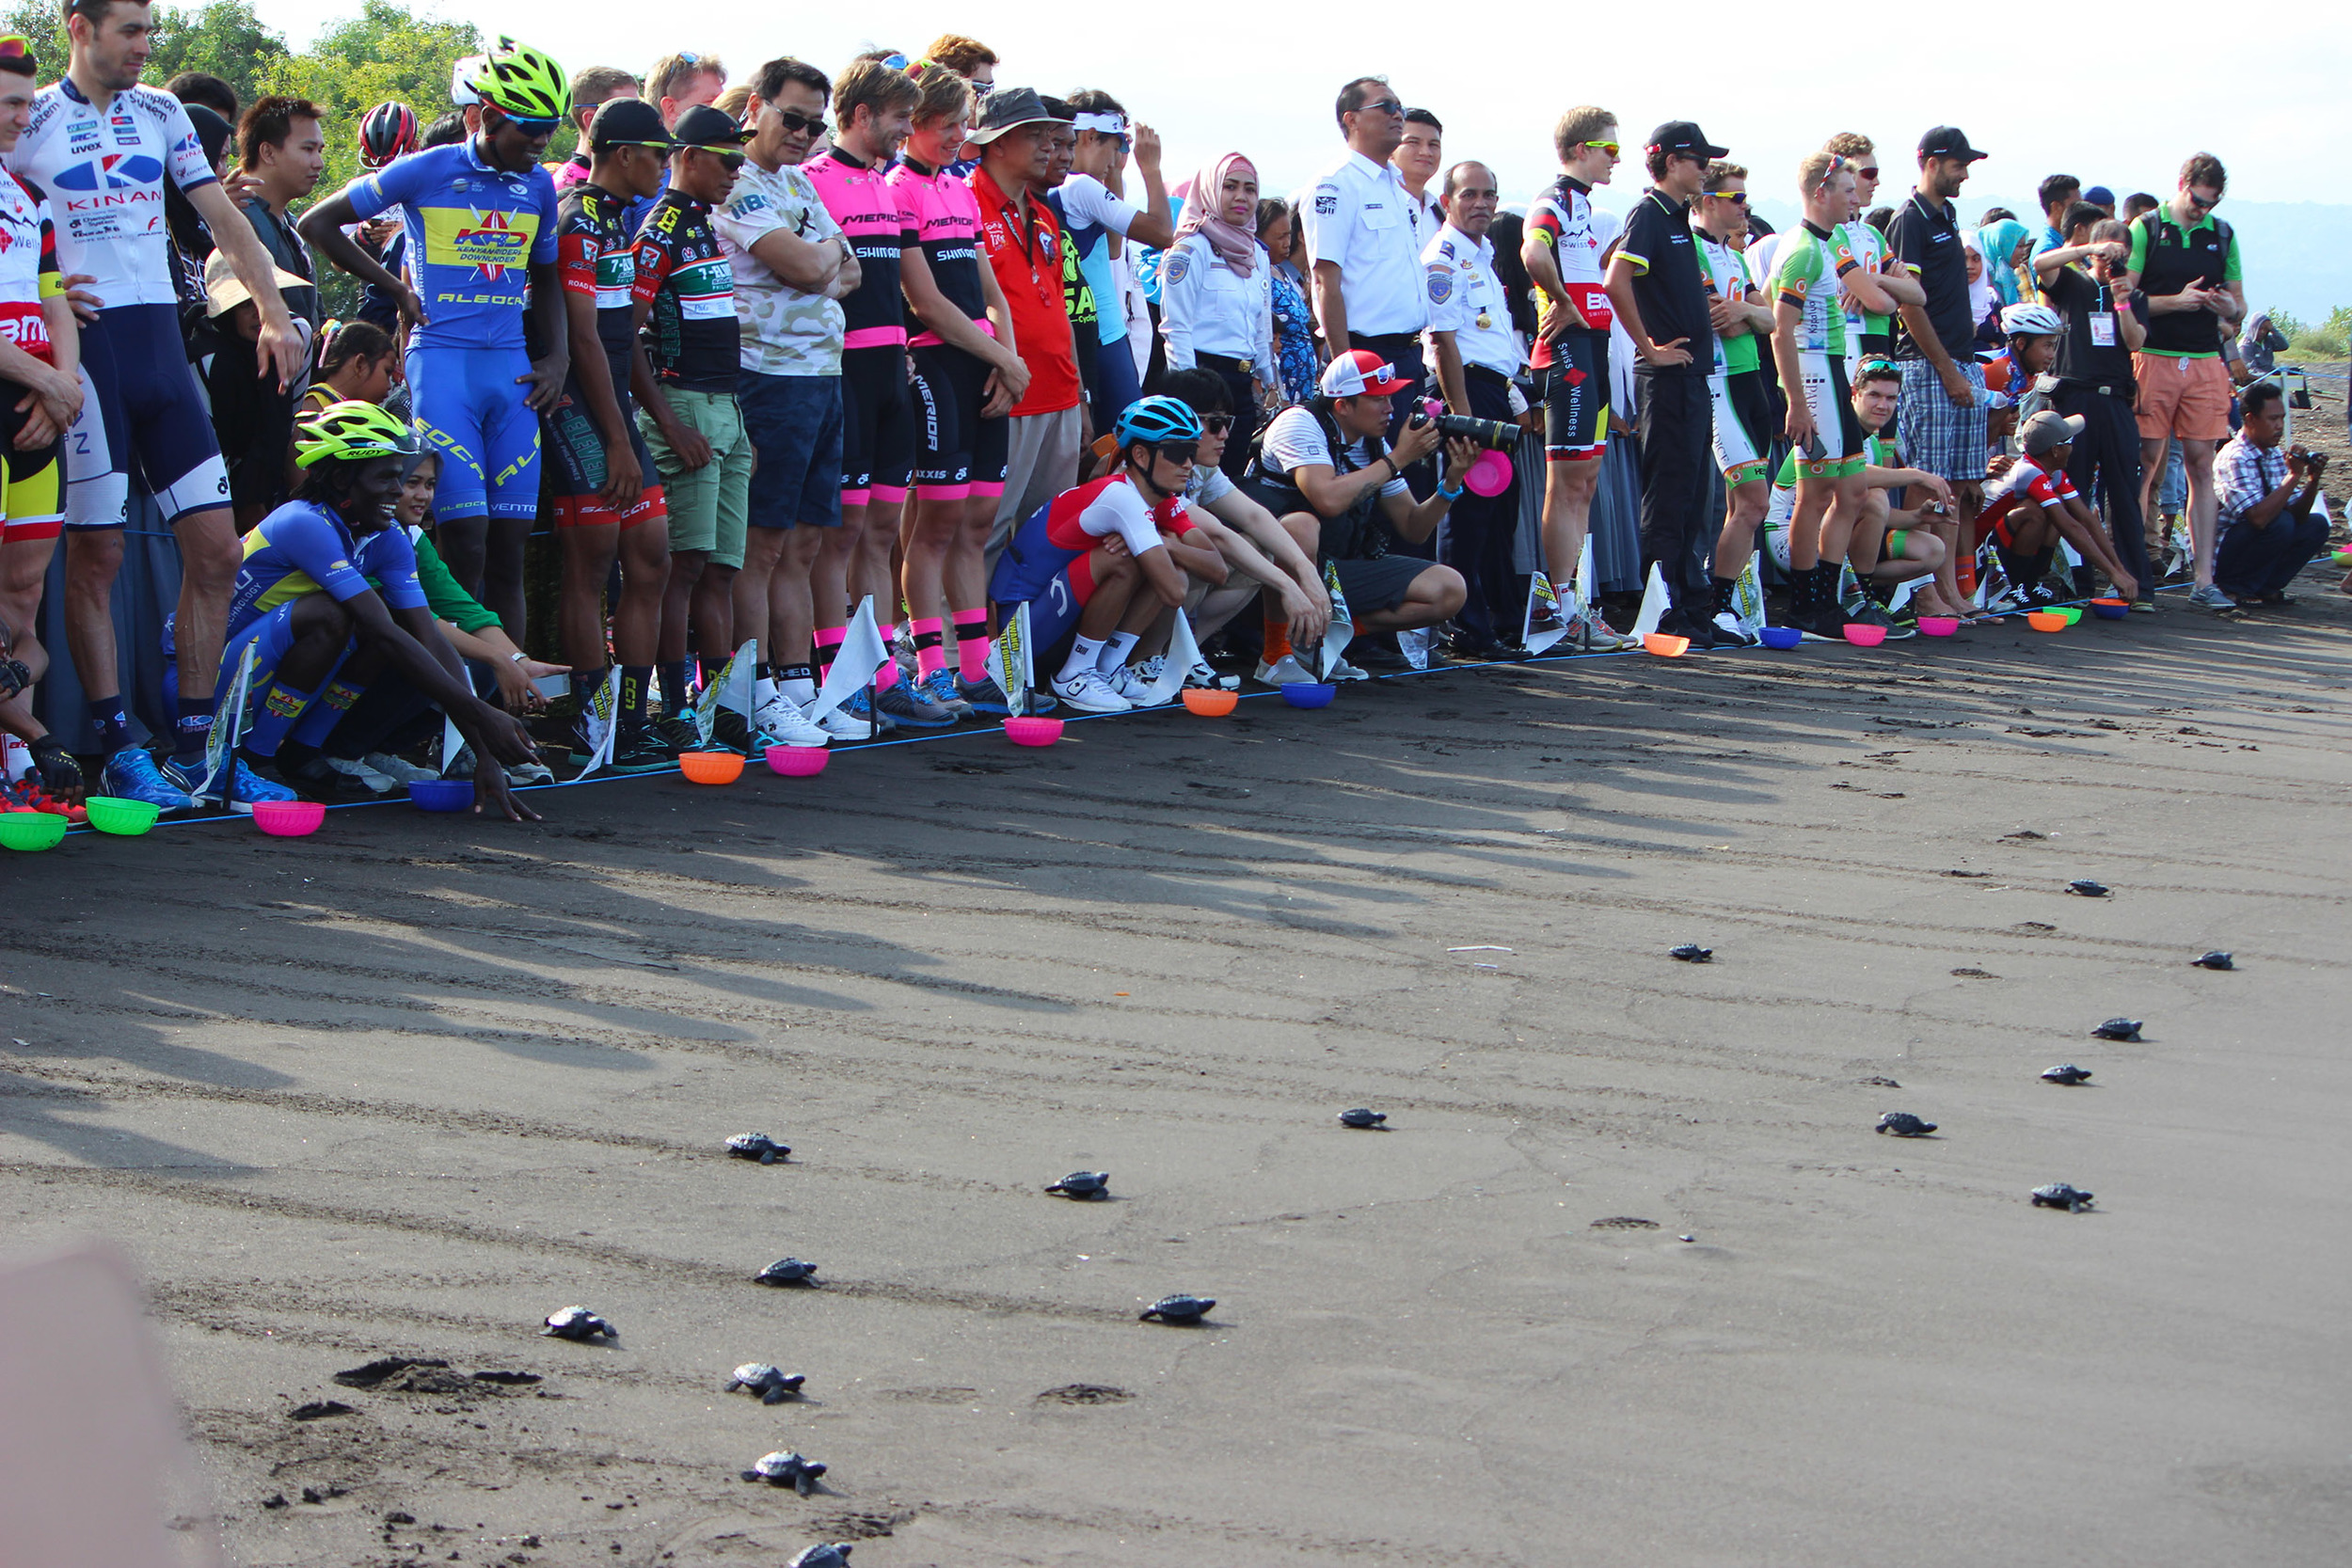 A light-hearted pre-race moment; racing turtles on the beach. Image by Simon Blake.